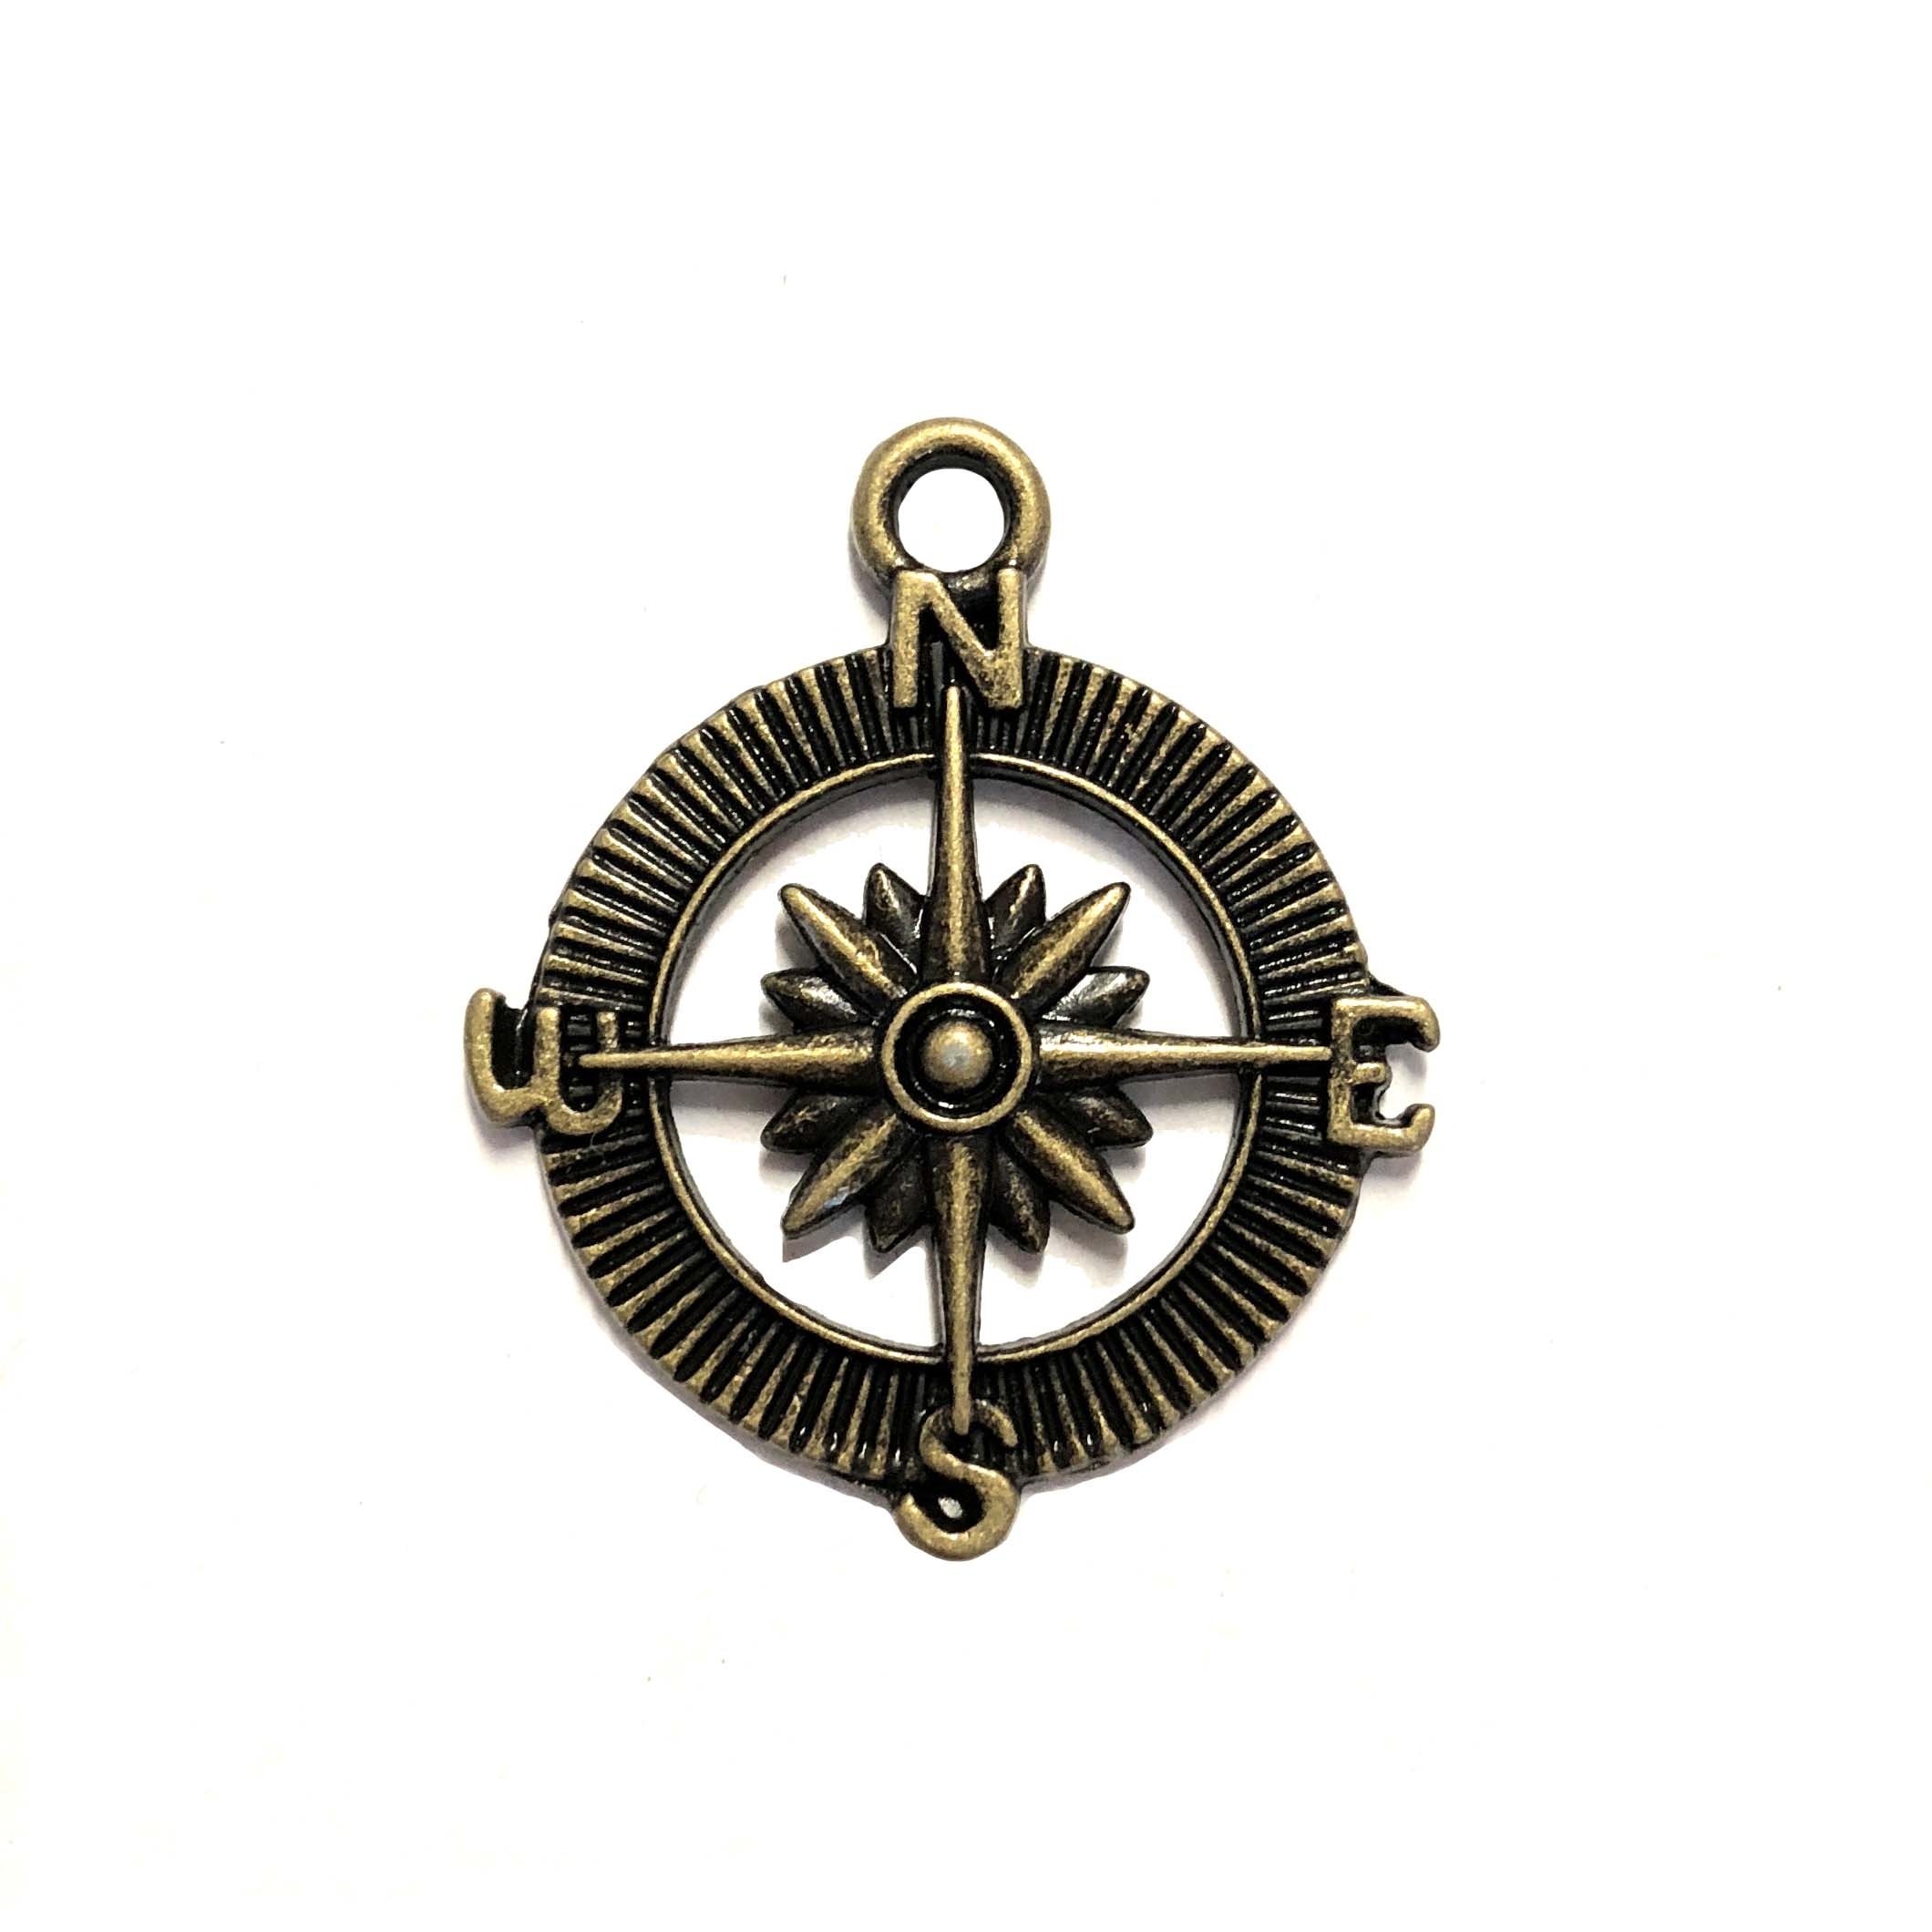 bronze compass, cast zinc, compass, steampunk art, steampunk, stamping, 25mm, starburst center, lead free, B'sue Boutiques, jewelry making, jewelry findings, vintage supplies, jewelry supplies, 08087, compass charm, charm, pendant